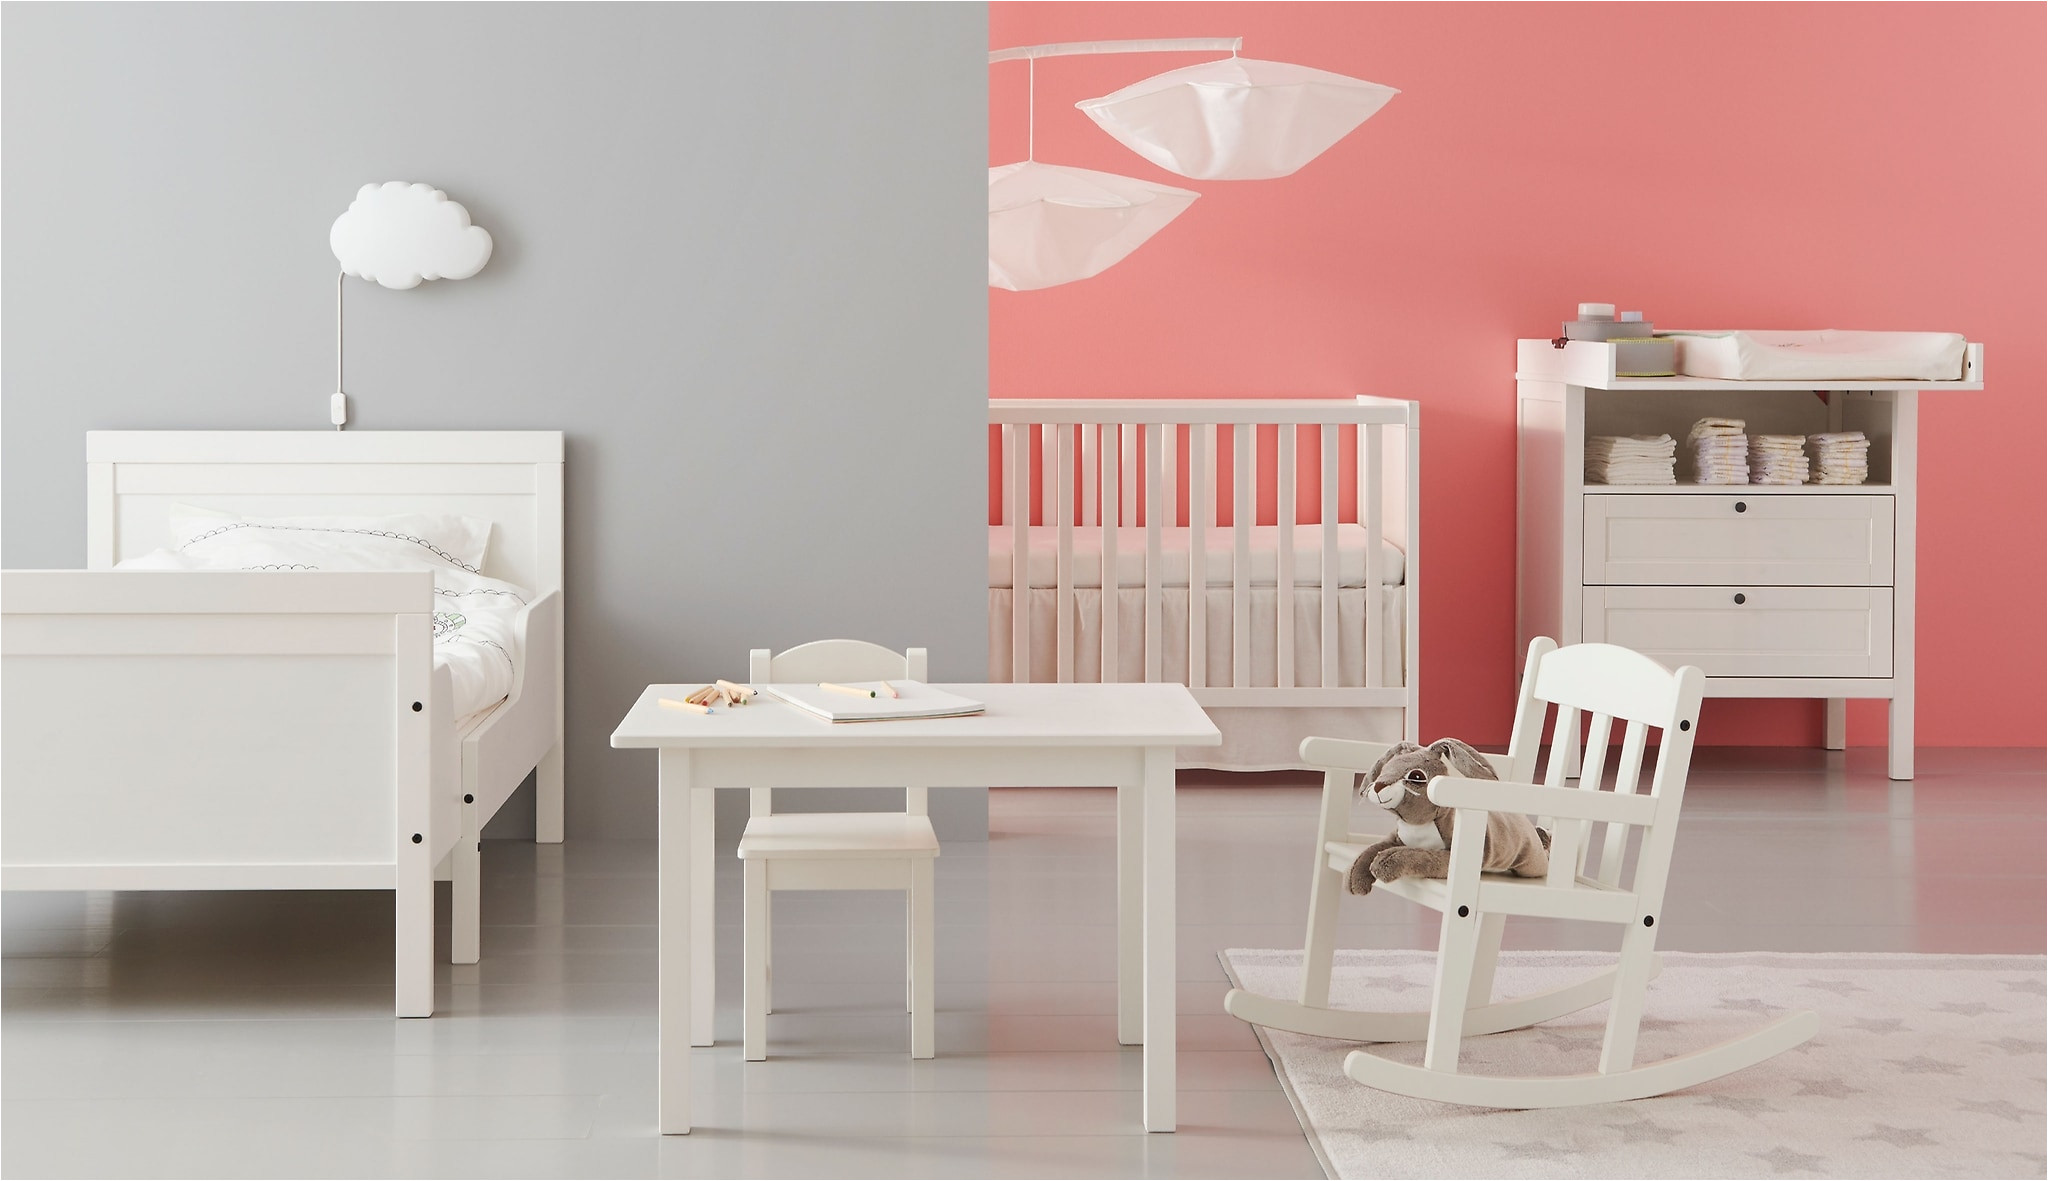 table chair cot changing table and even a rocking chair all in